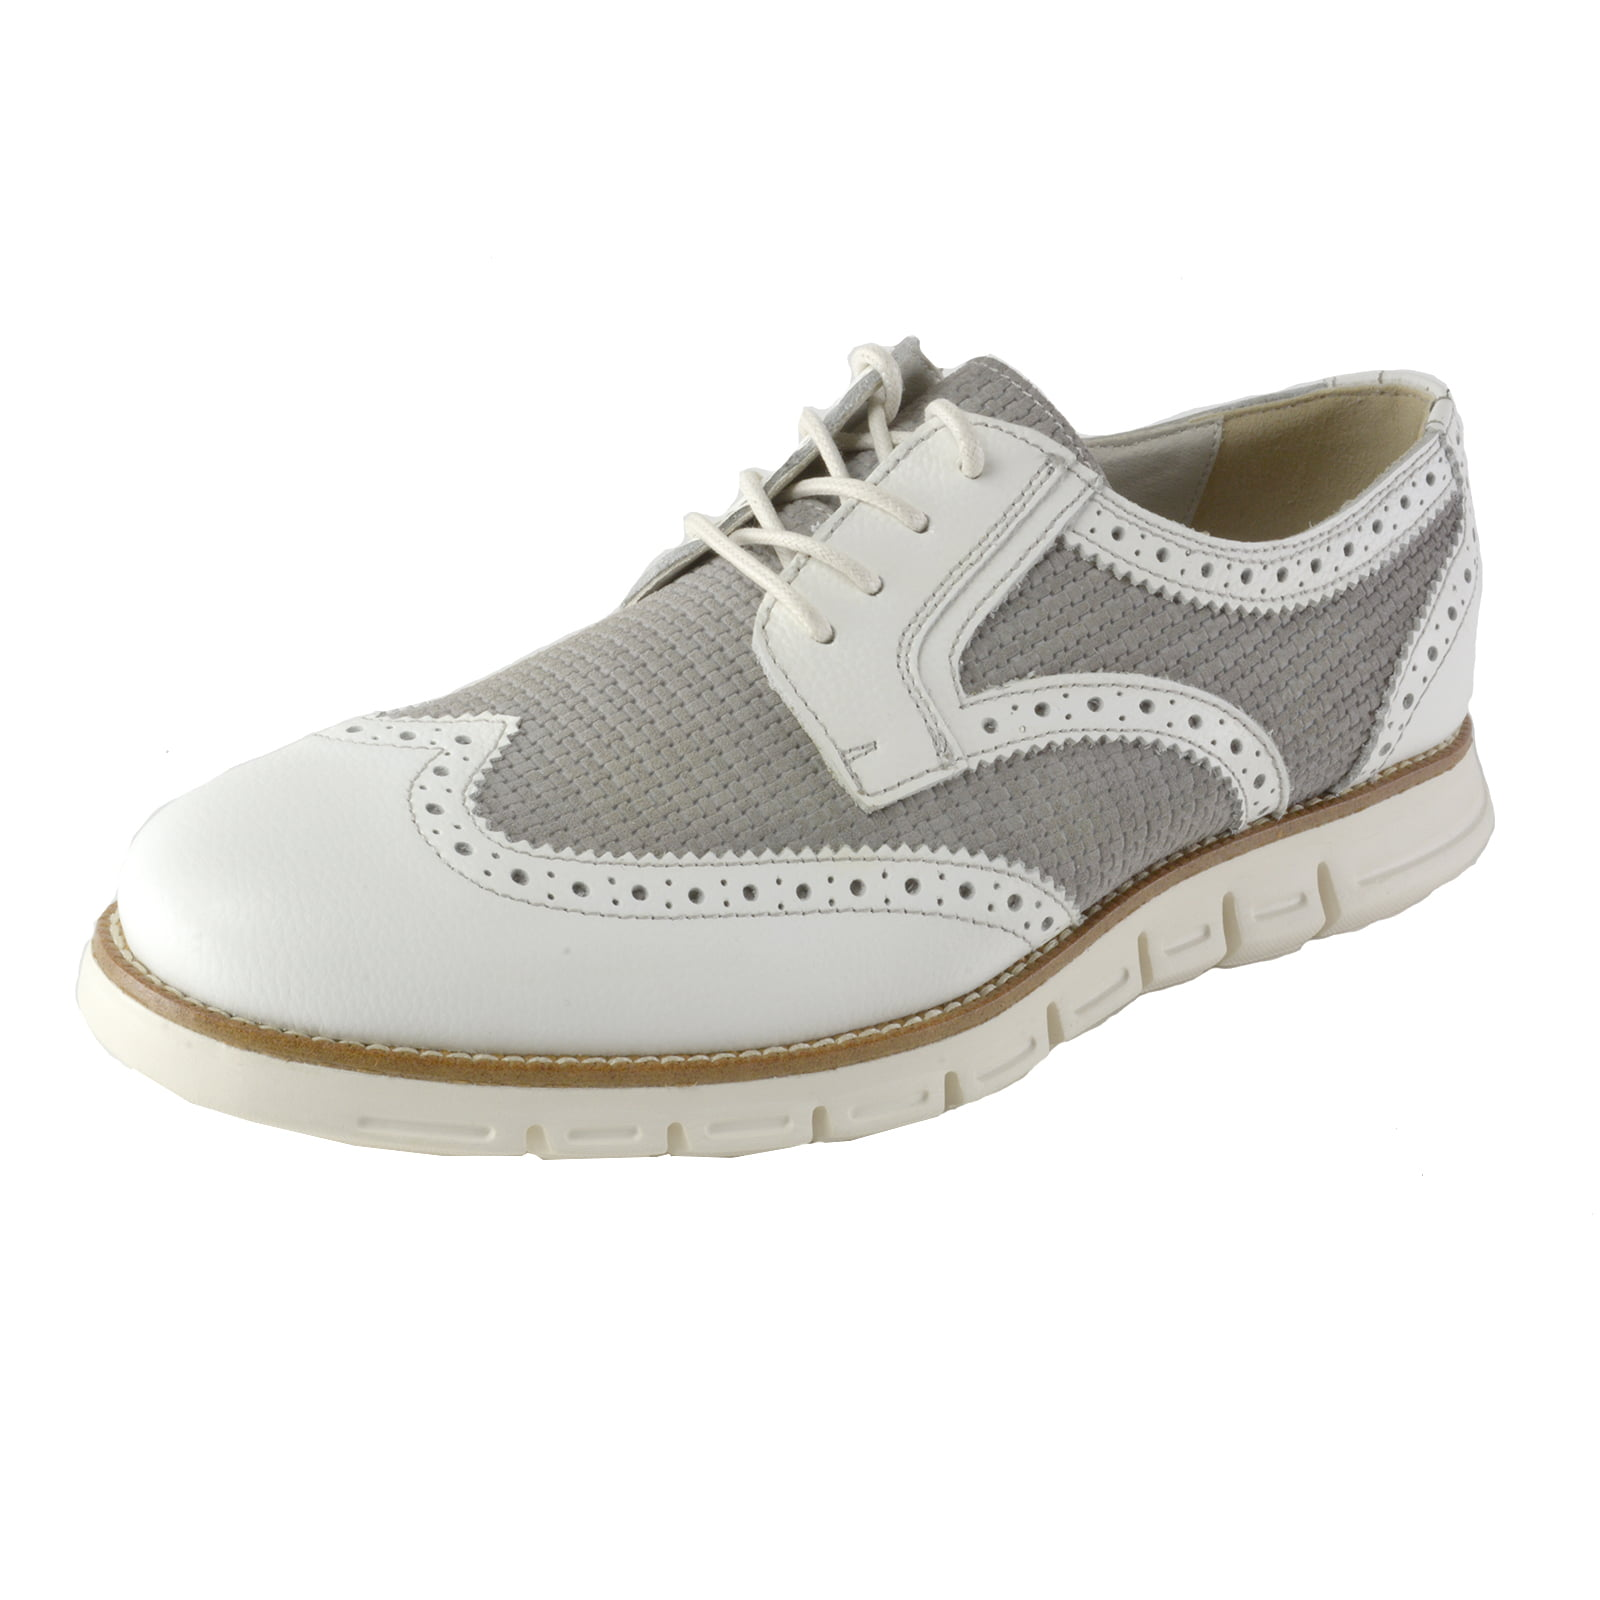 GBX Hirt Men's Classic Wingtip Derby Lace-Up Oxfords by